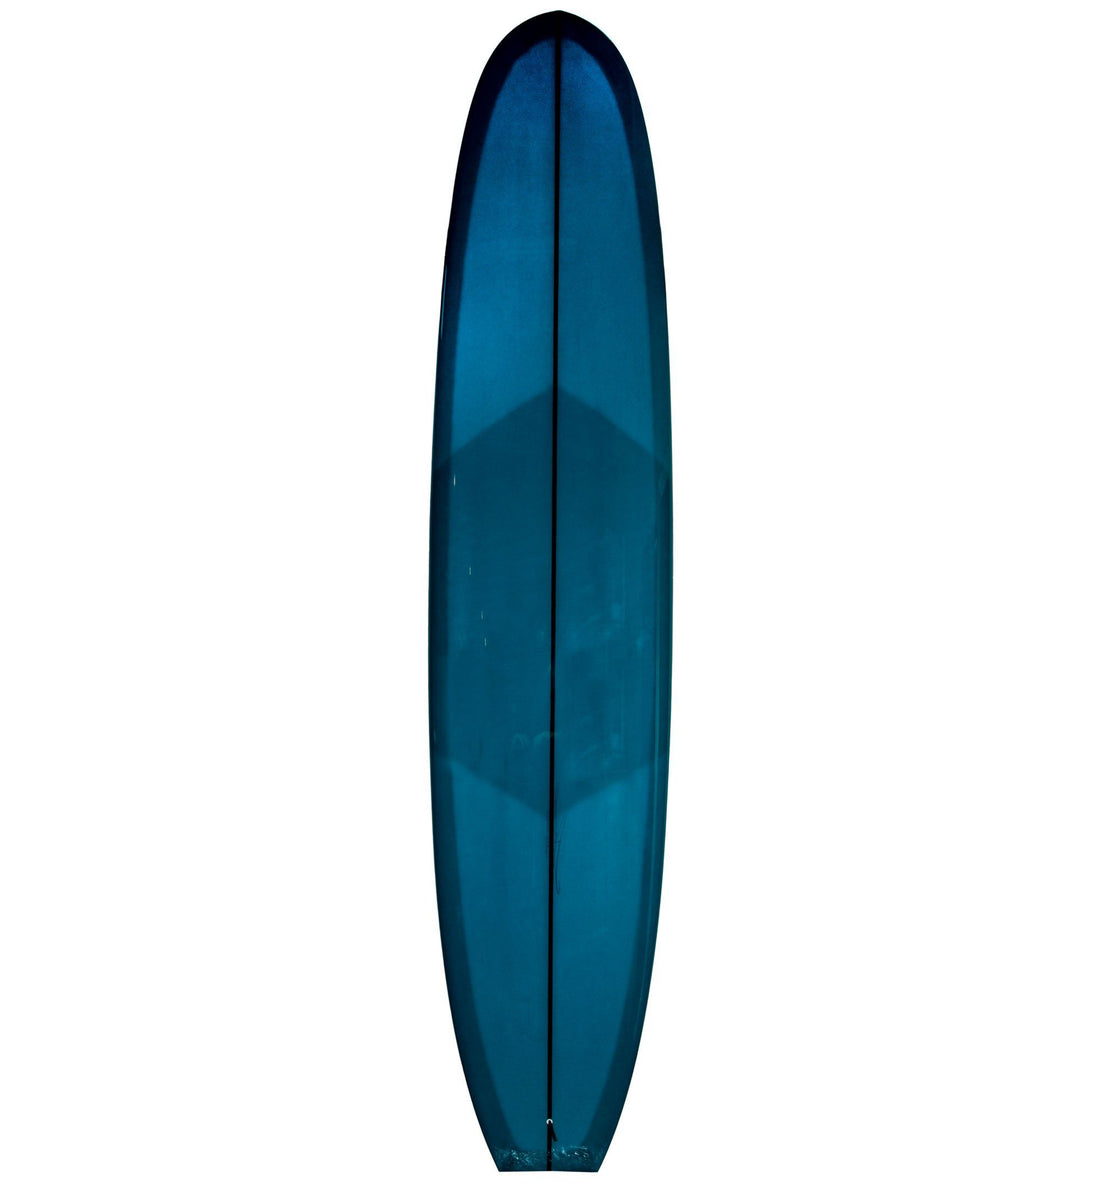 "Christenson Surfboards Bonneville - Blue Tint - 9'6"" - Surf - Iron and Resin"